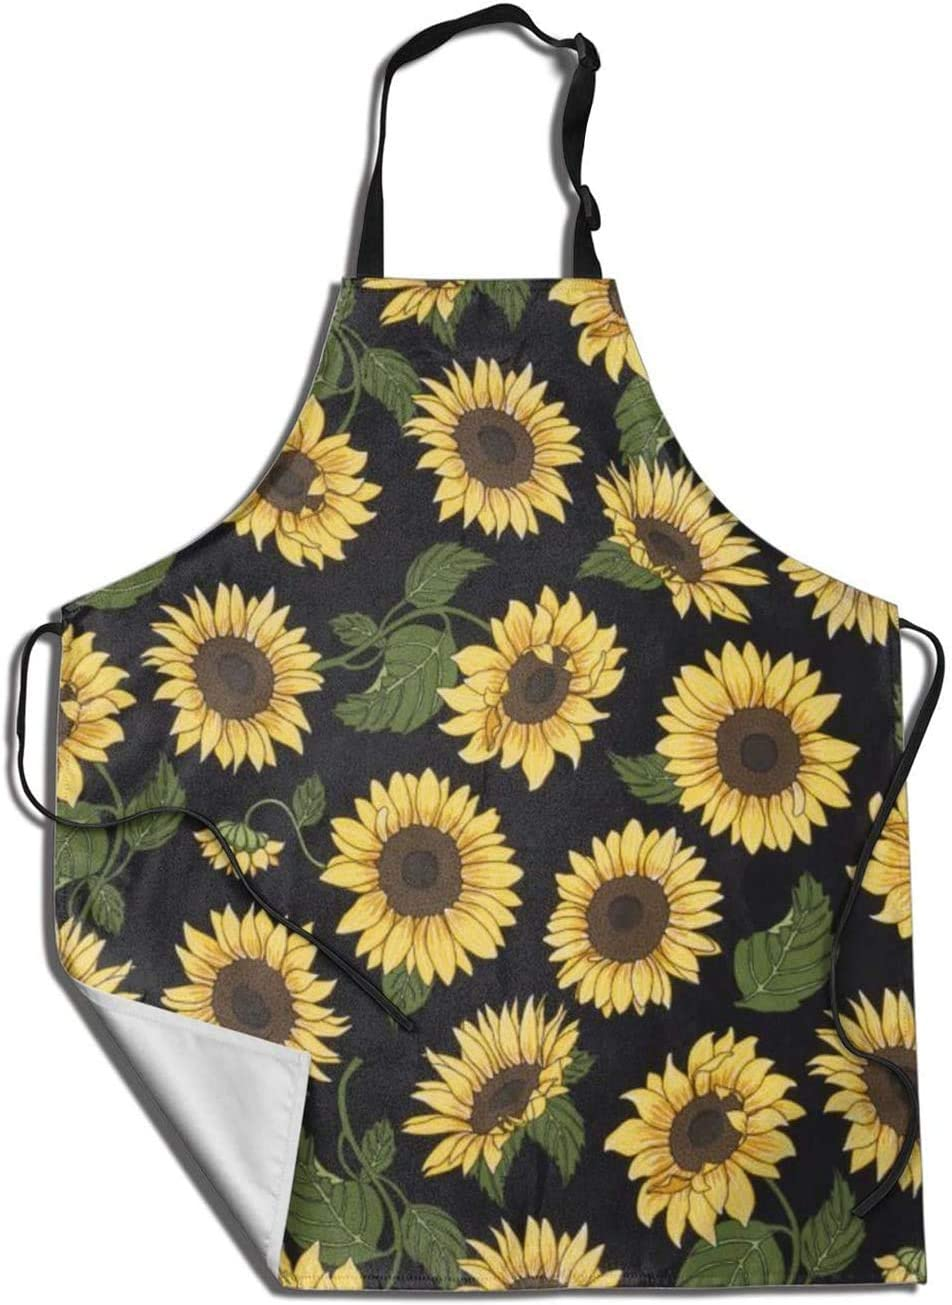 Dadidyc Sunflower with Leaves- Unisex Cooking Apron - Kitchen Grilling Apron for Baking/BBQ Men Women - Waterproof Dustproof Garden Funny Apron Black 31.5X27.5 Inch